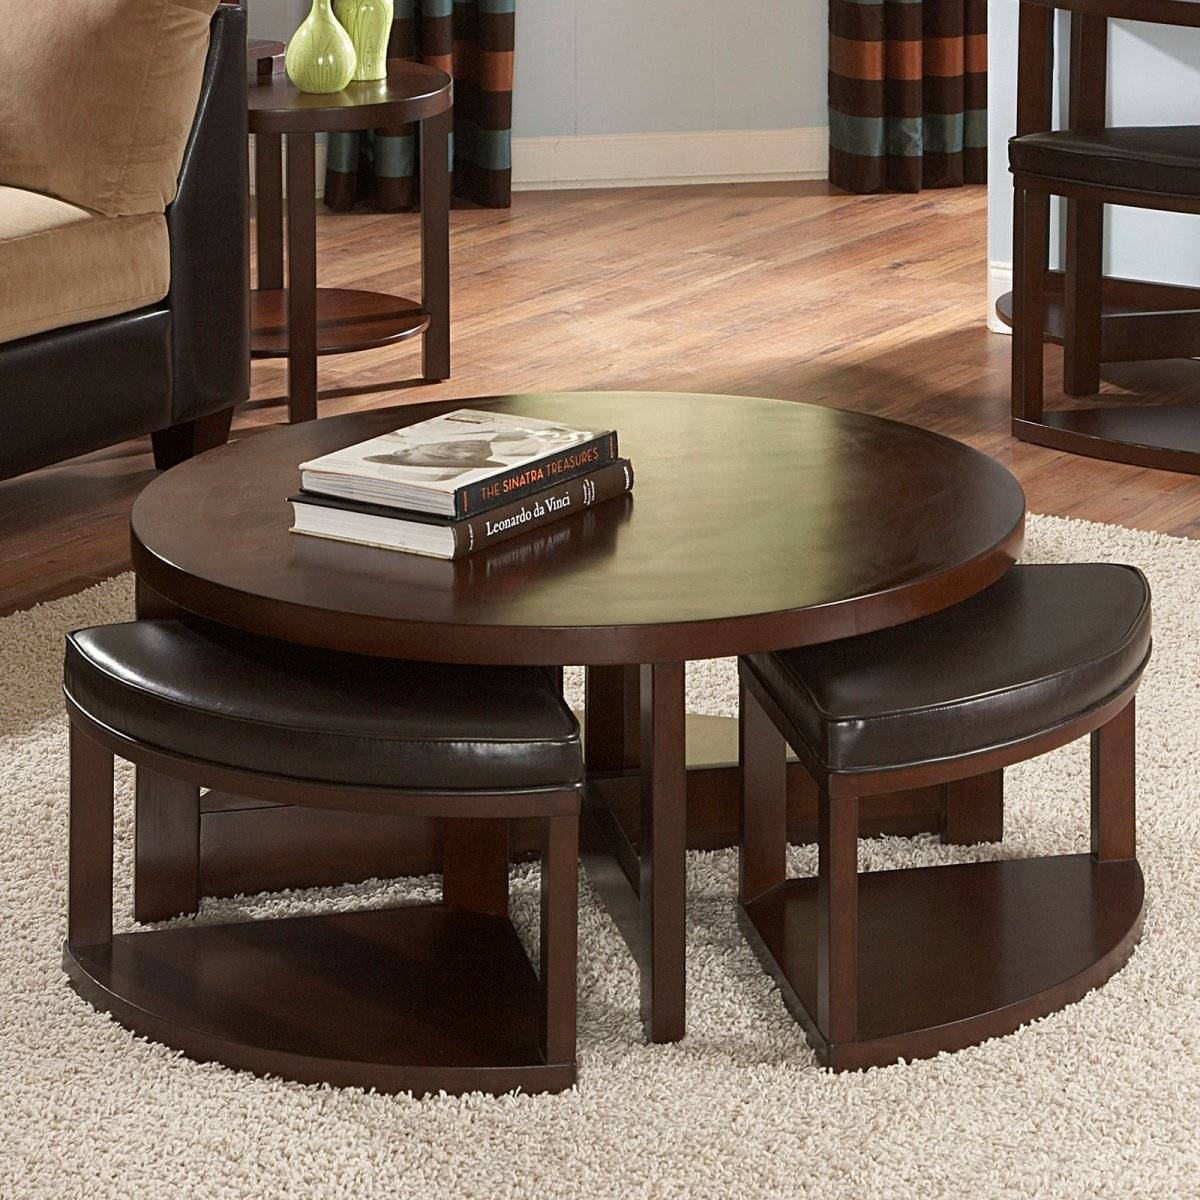 Reupholster Round Coffee Table Ottoman in Small Circle Coffee Tables (Image 19 of 30)